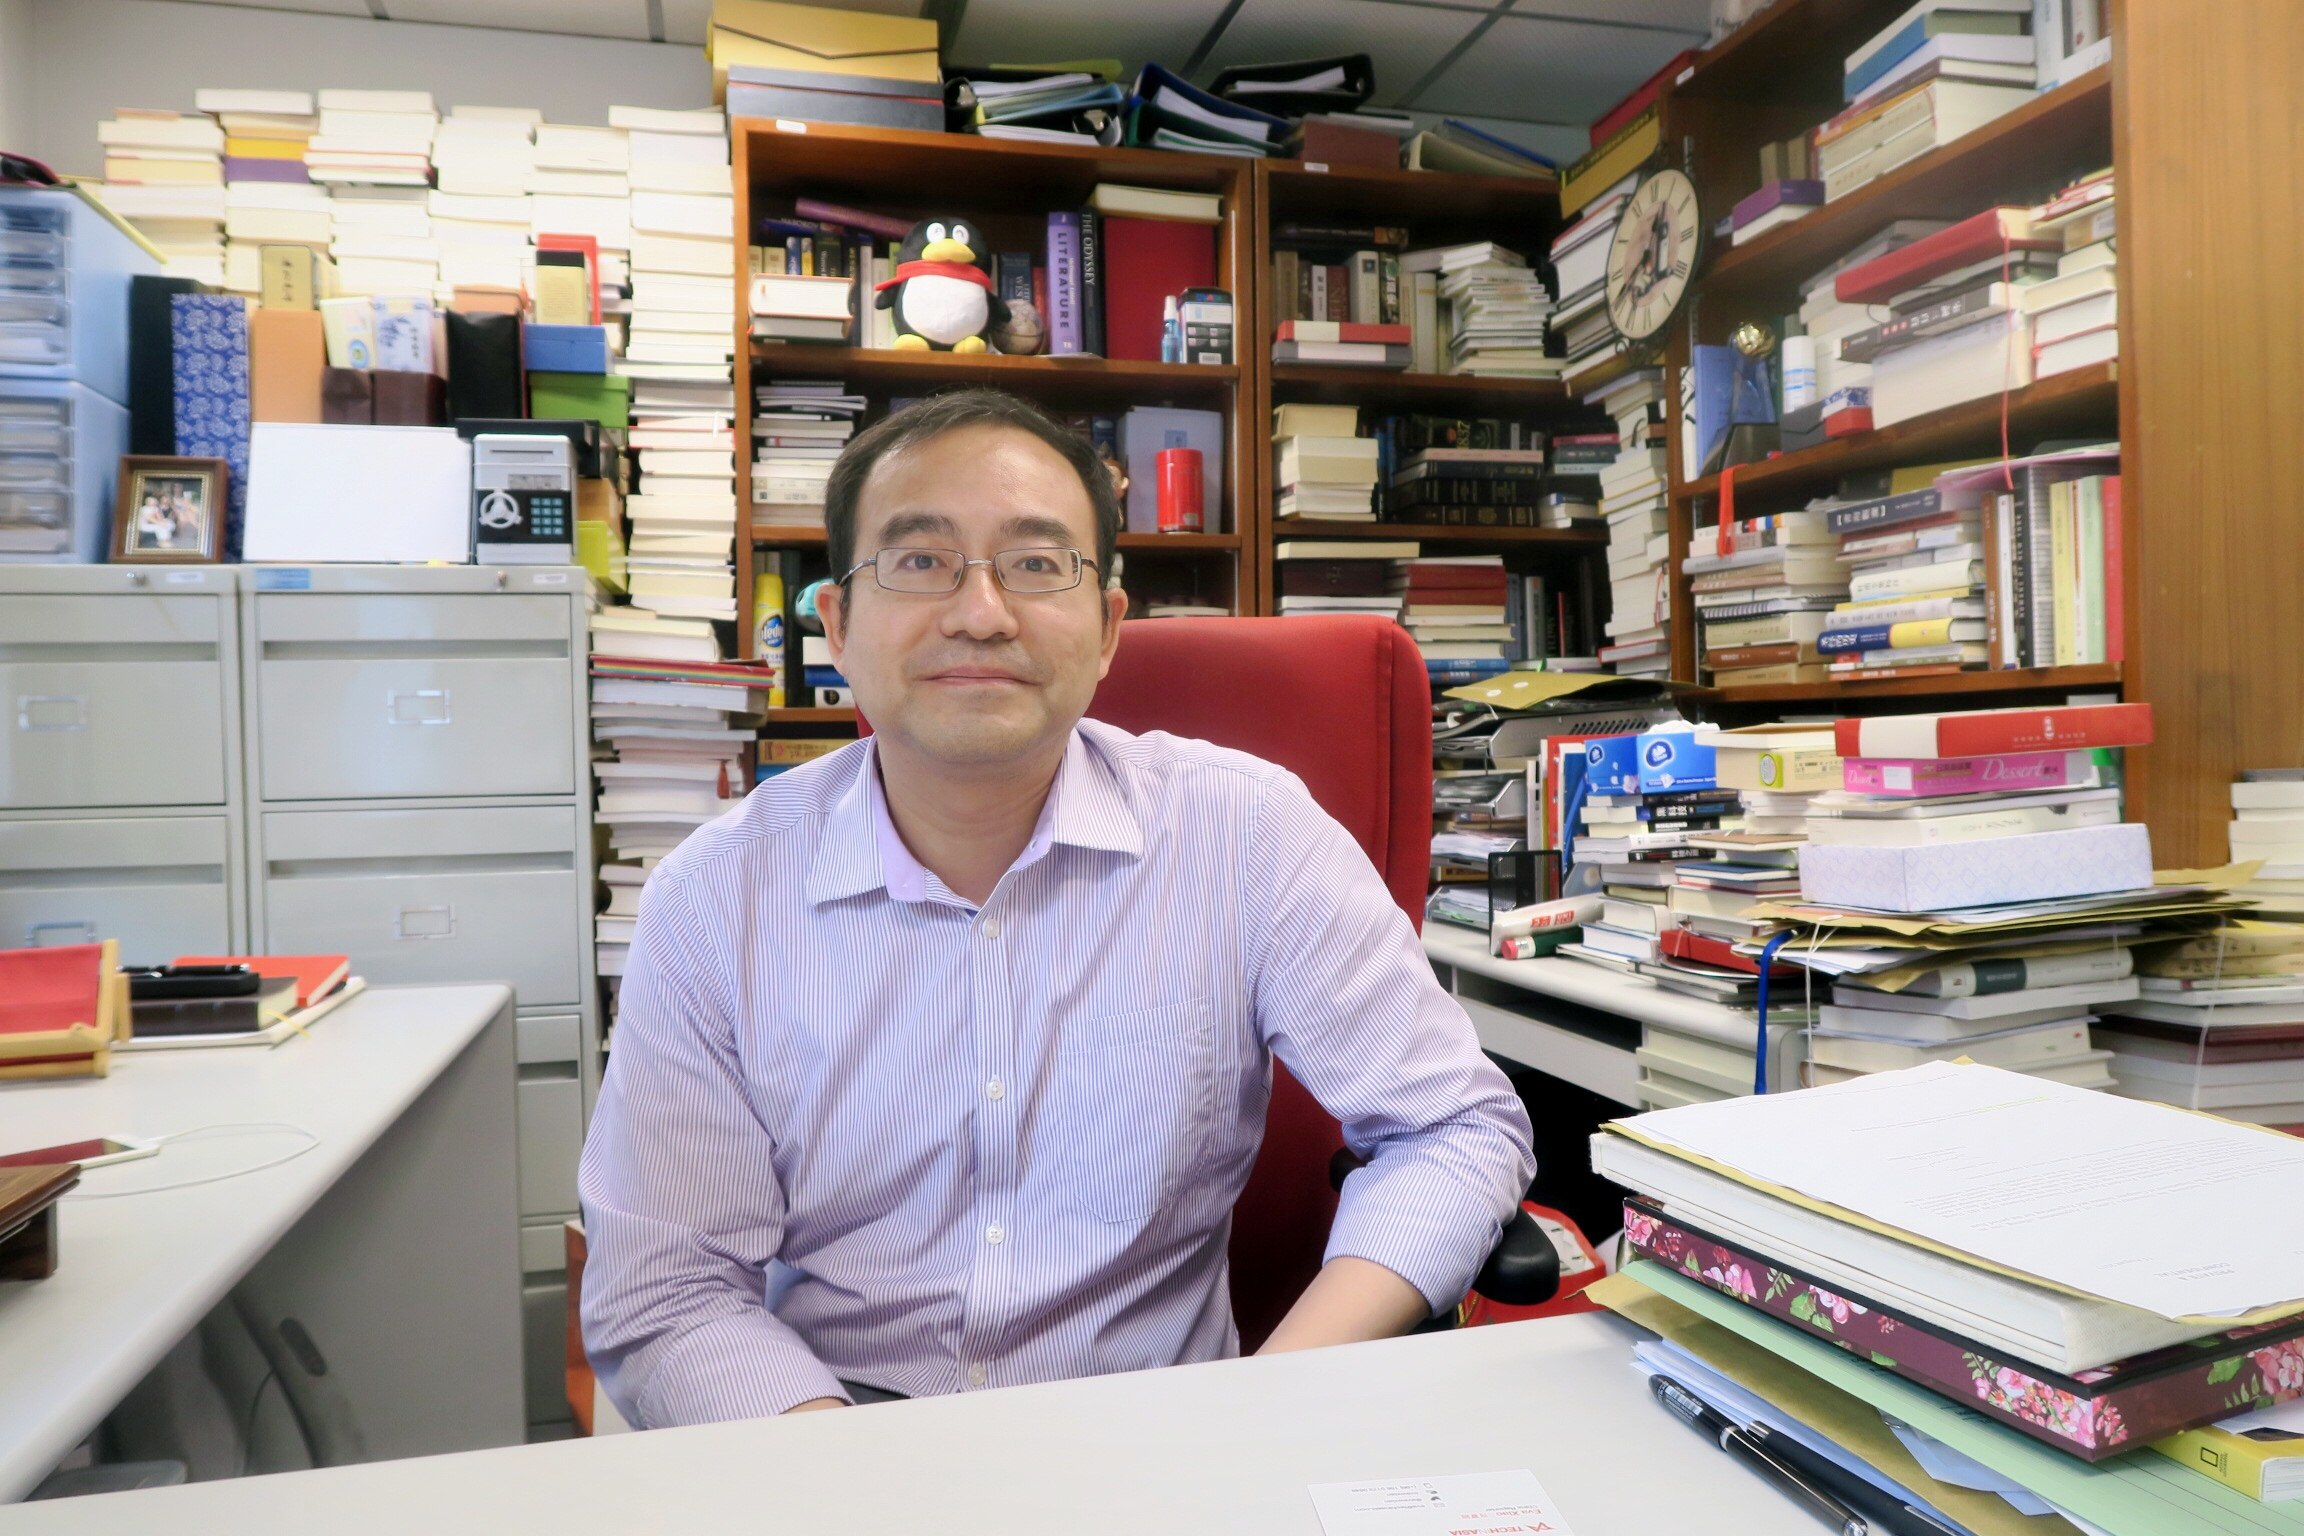 Huamin Qu, professor of computer science at Hong Kong University of Science and Technology. He specializes in data visualization.